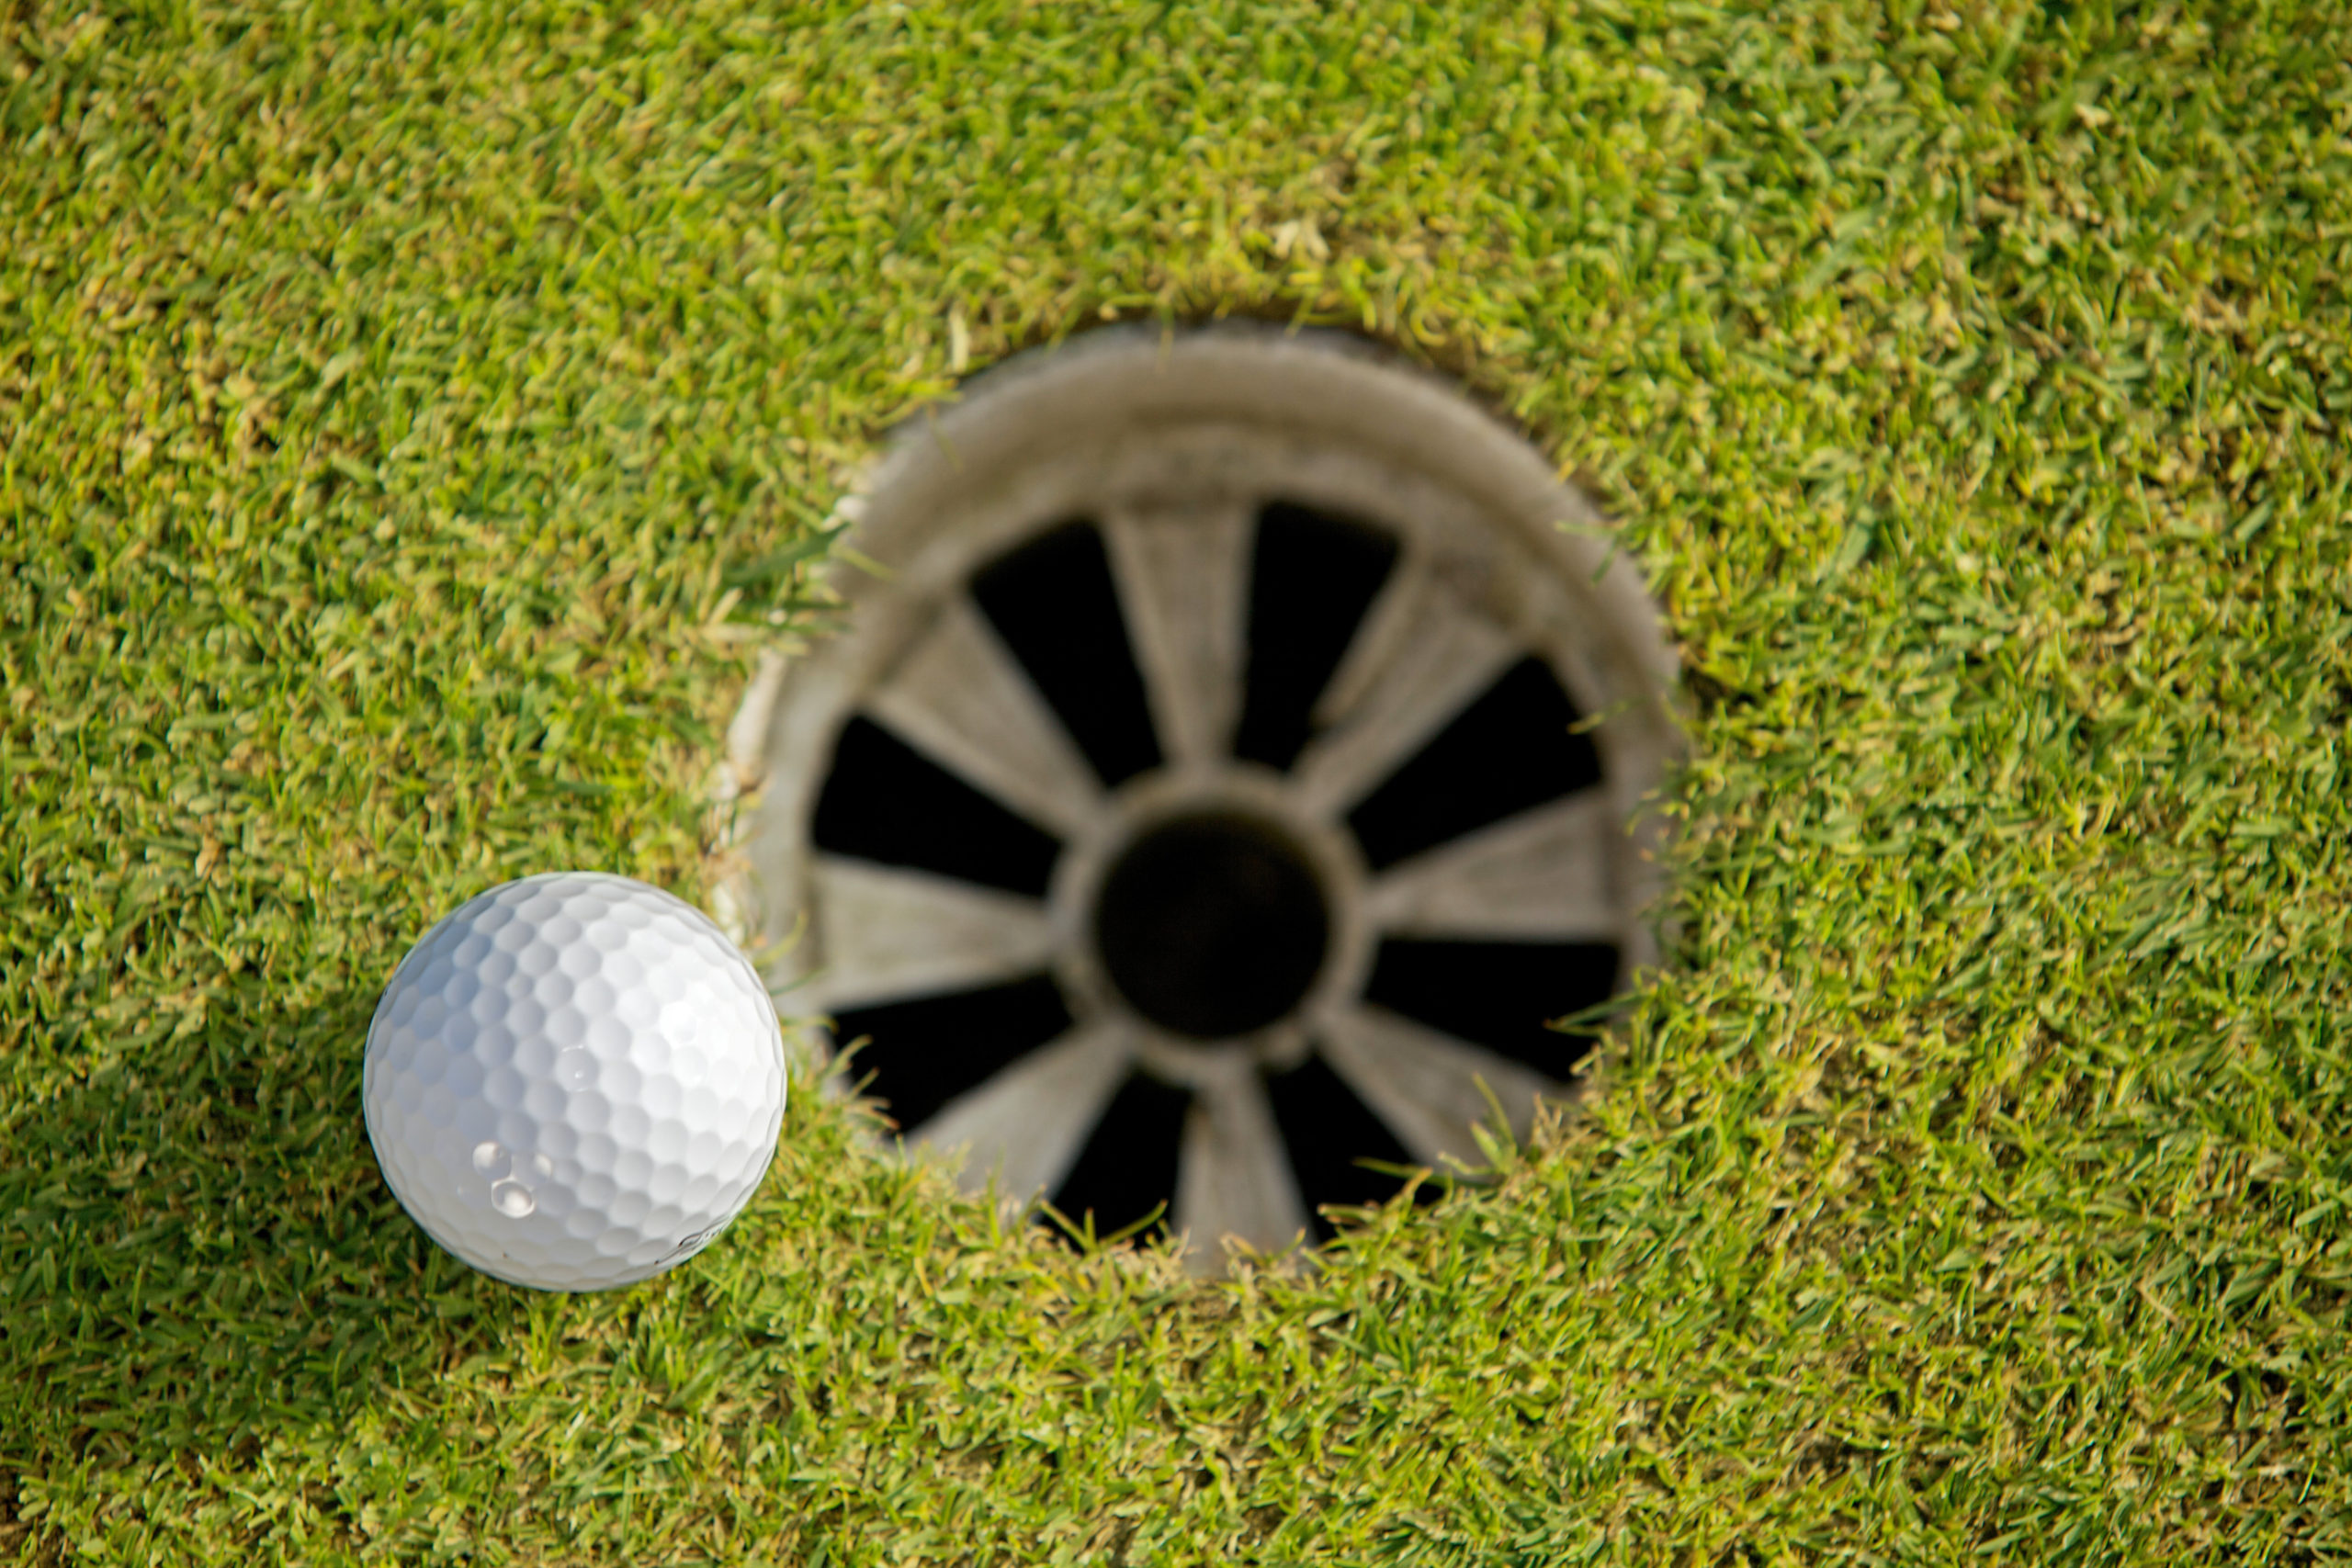 Do More Dimples On A Golf Ball Make It Better? (The Truth)